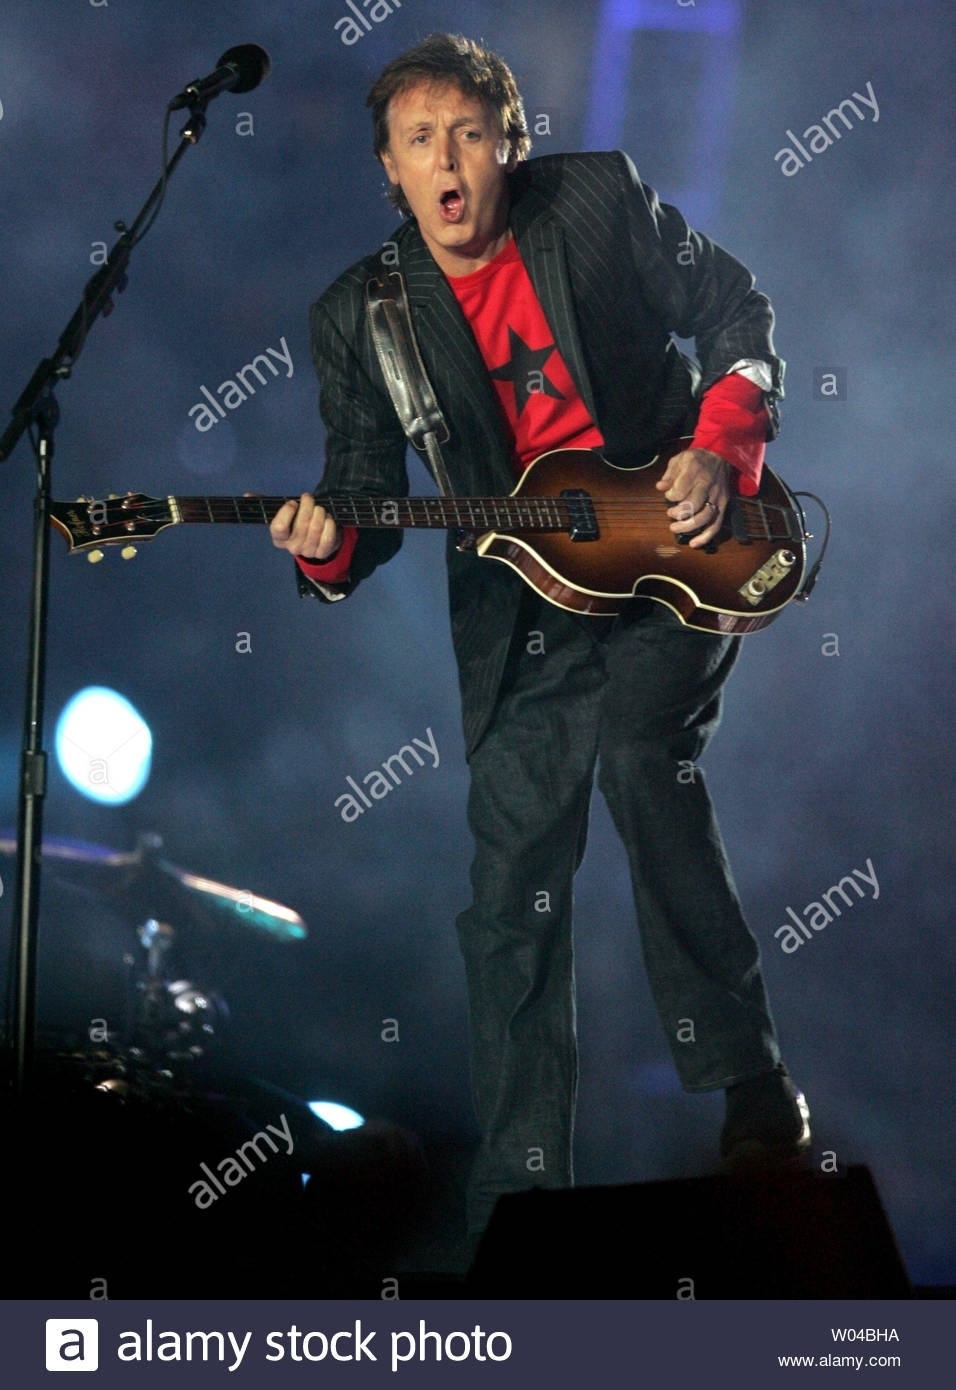 Sir Paul Mccartney Performs In The Halftime Show At Super within Paul Mccartney Super Bowl